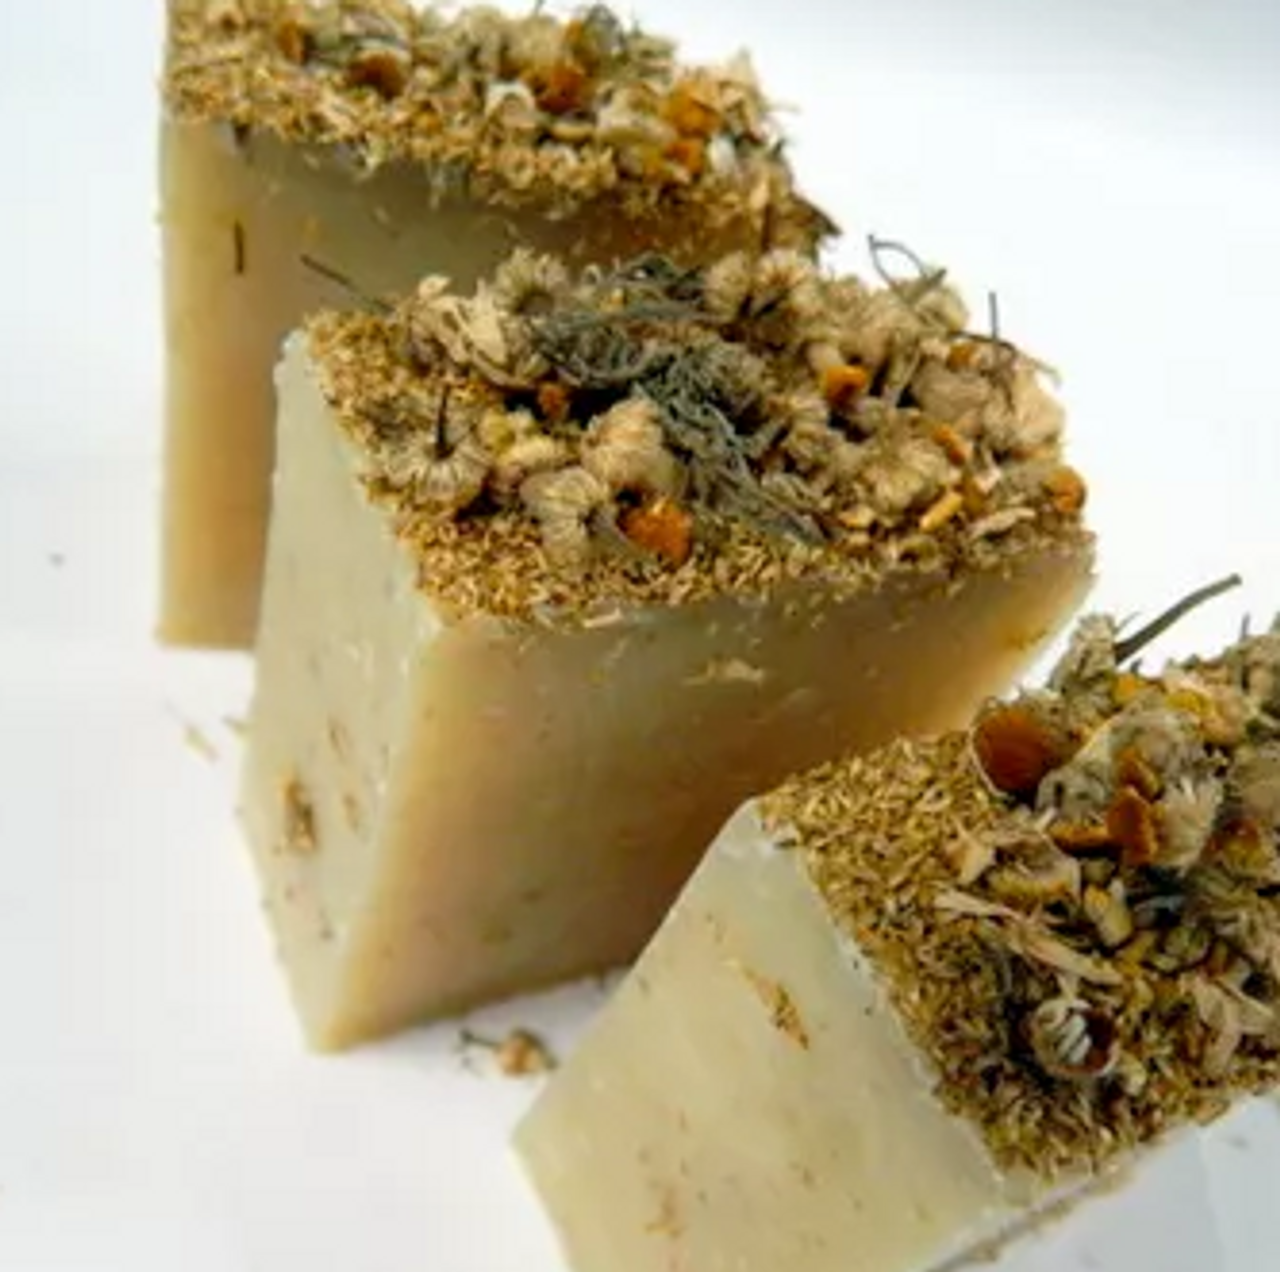 CHAMOMILE FLOWERS HAND MADE VEGAN EARTHLY DELIGHT SOAP 100G